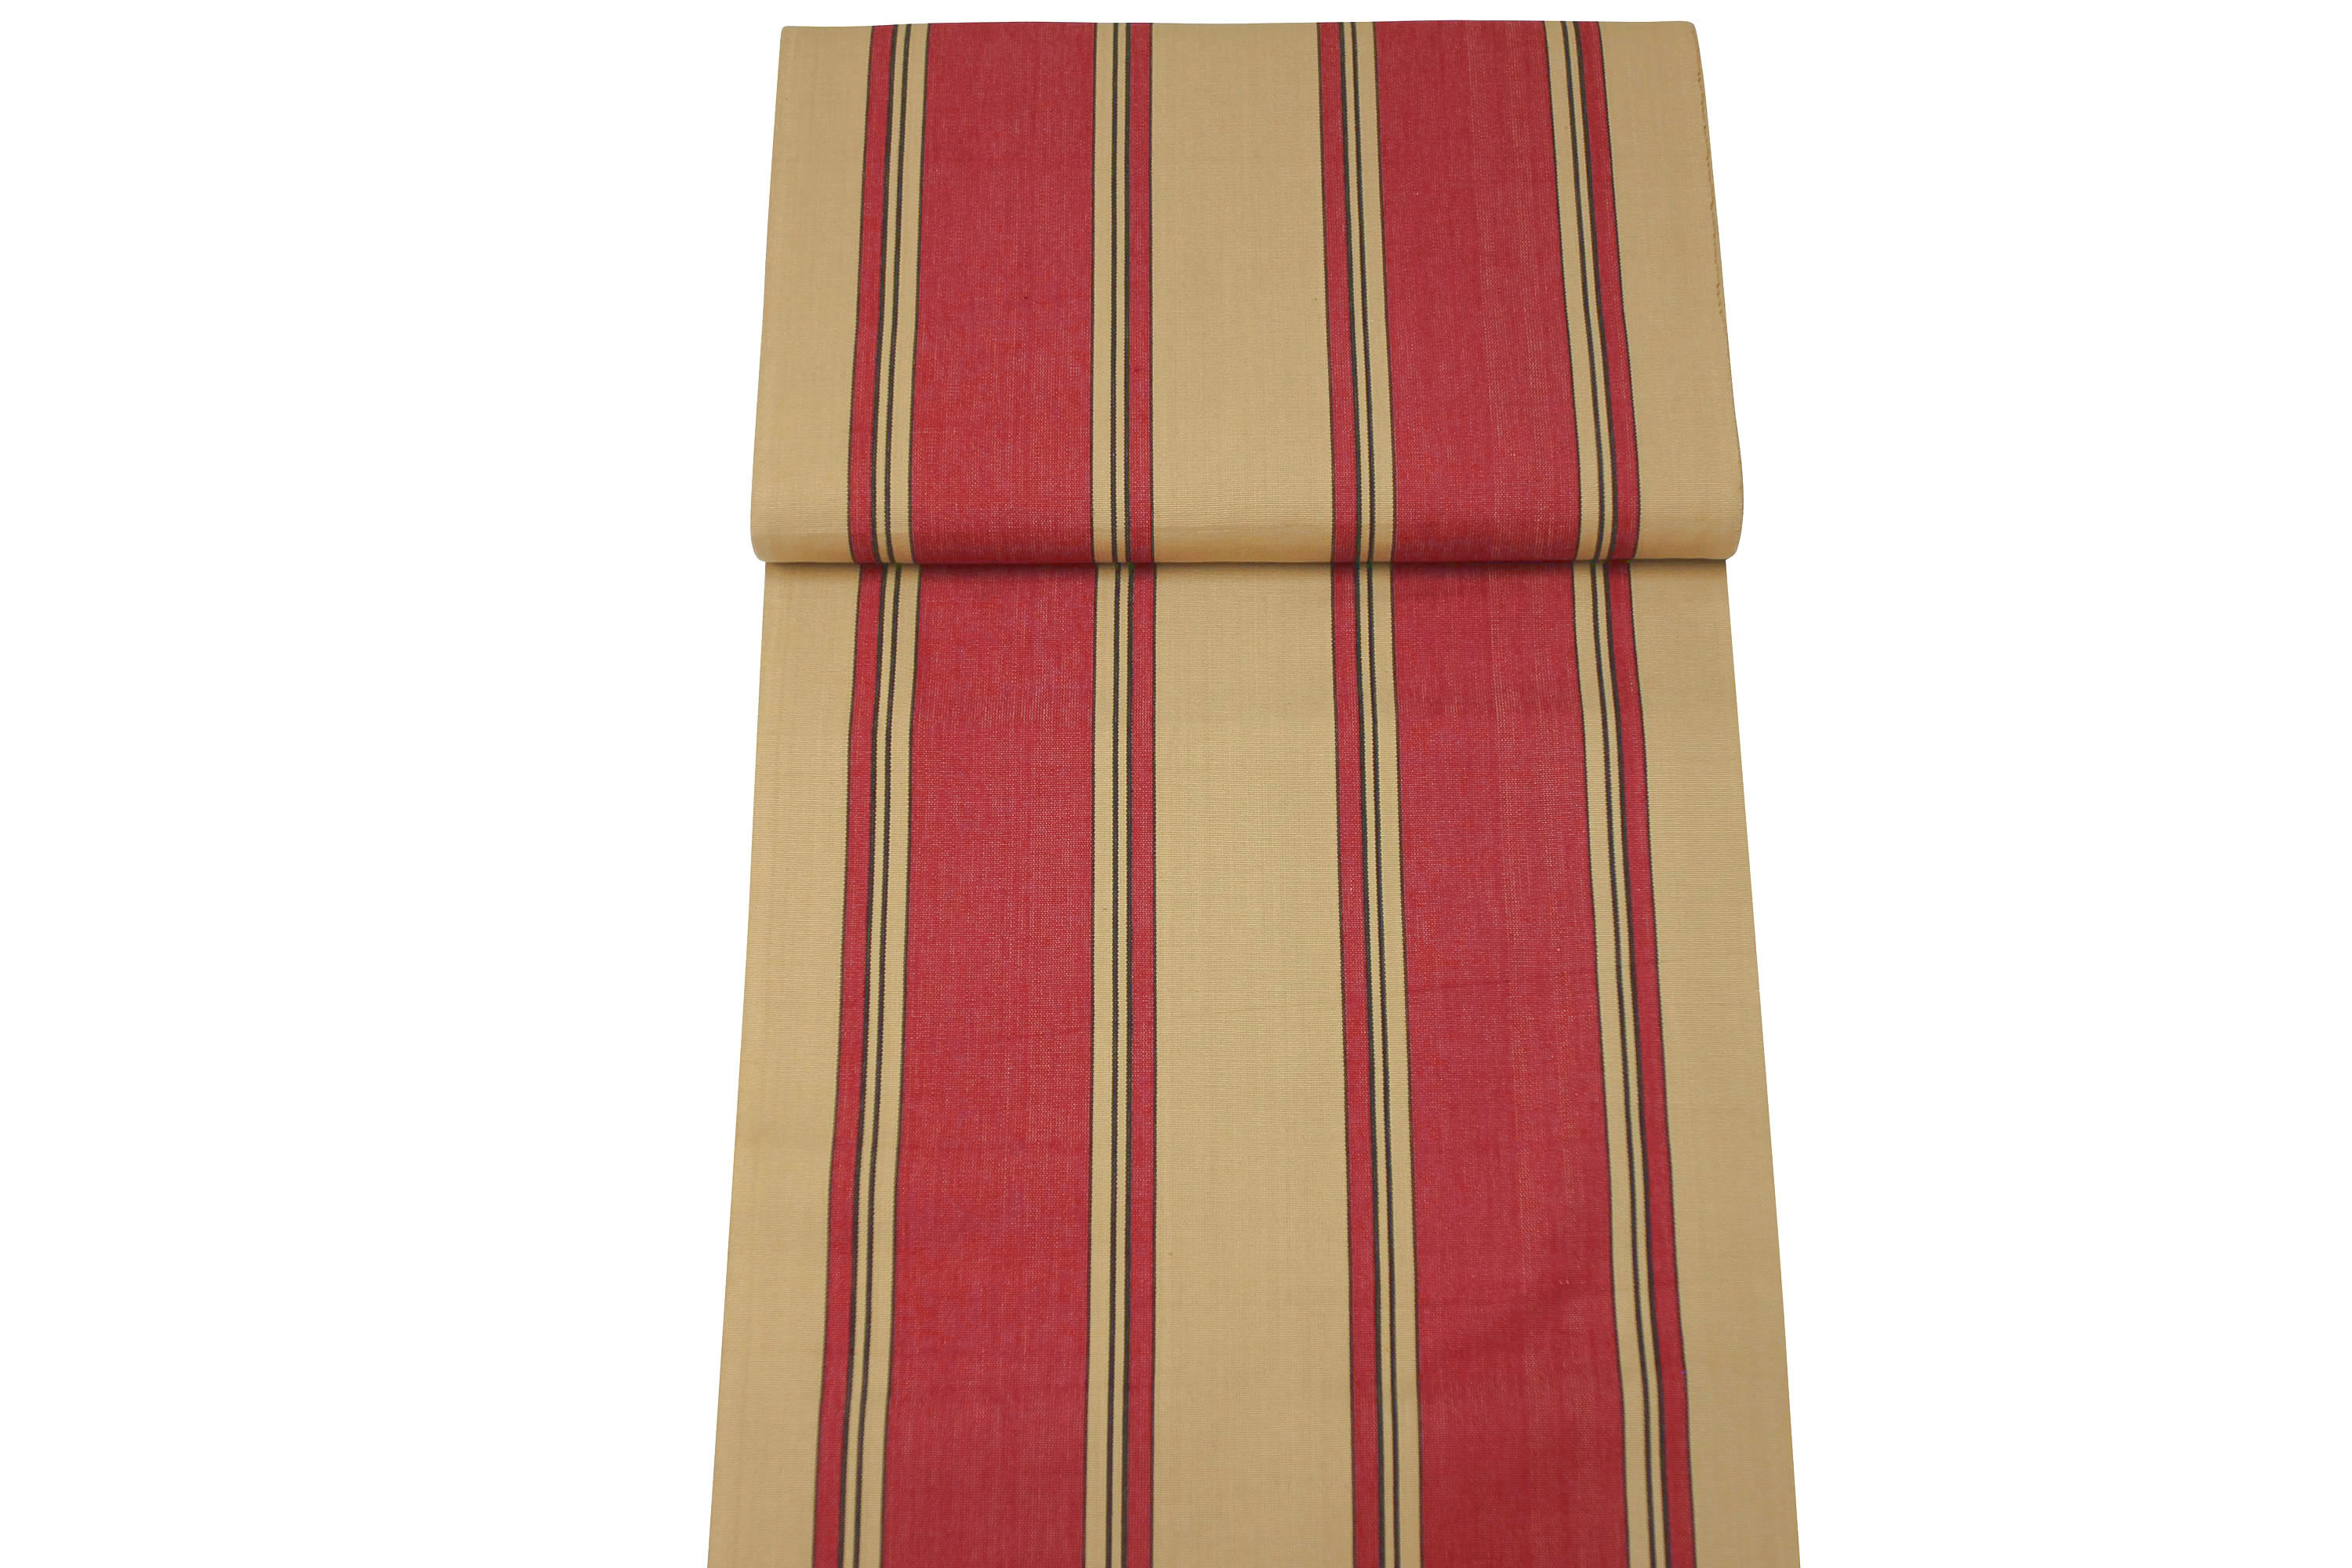 Red And Beige Wide Stripes Lined With Thin Black Deckchair Canvas Vintage Archive Striped Fabrics | Vintage Deckchair Fabric Steeplechase Stripes